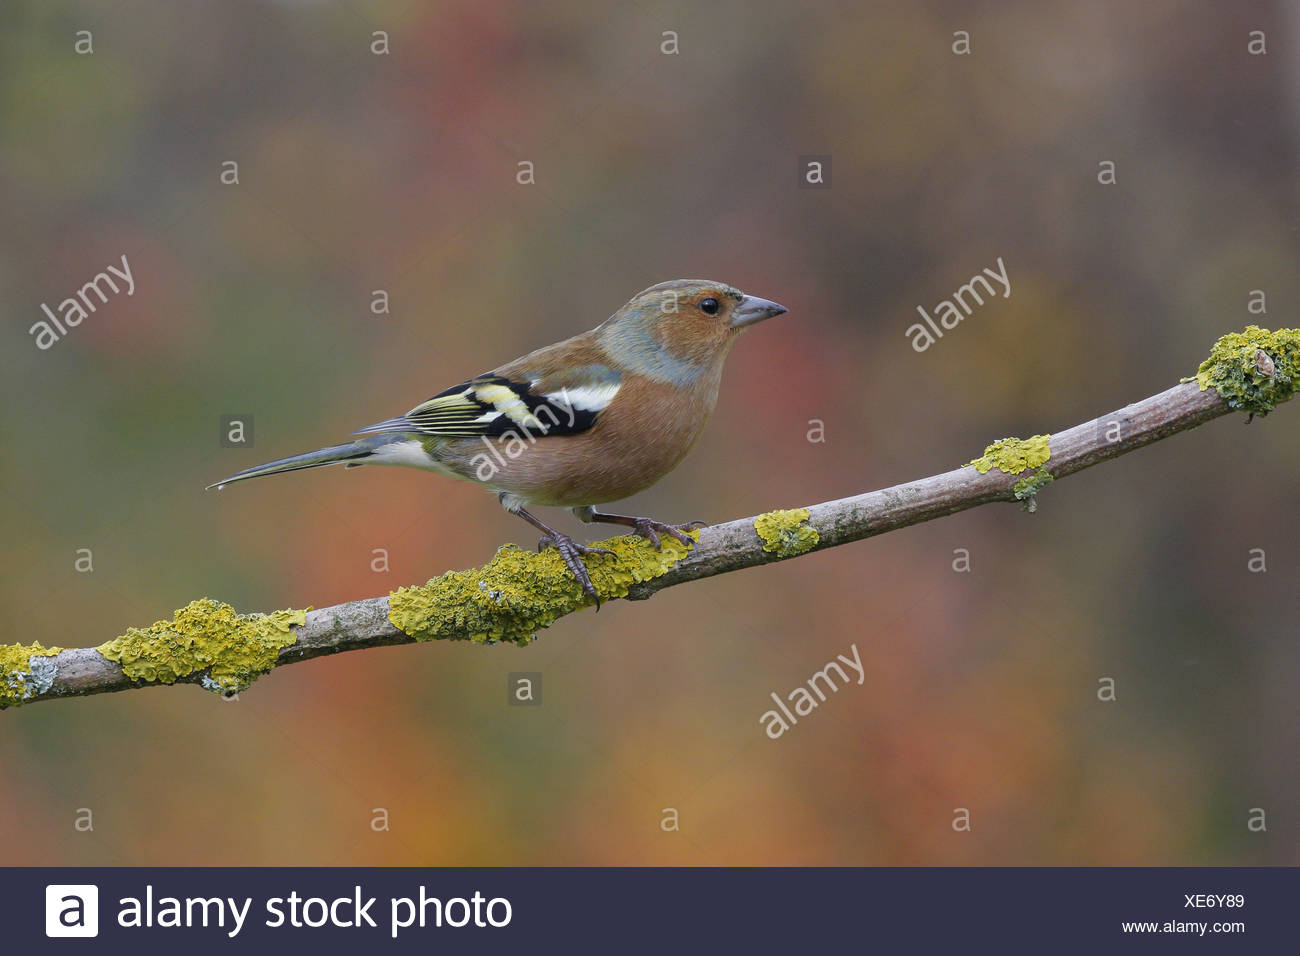 Chaffinch (Fringilla coelebs) adult male, perched on twig, Leicestershire, England, autumn - Stock Image